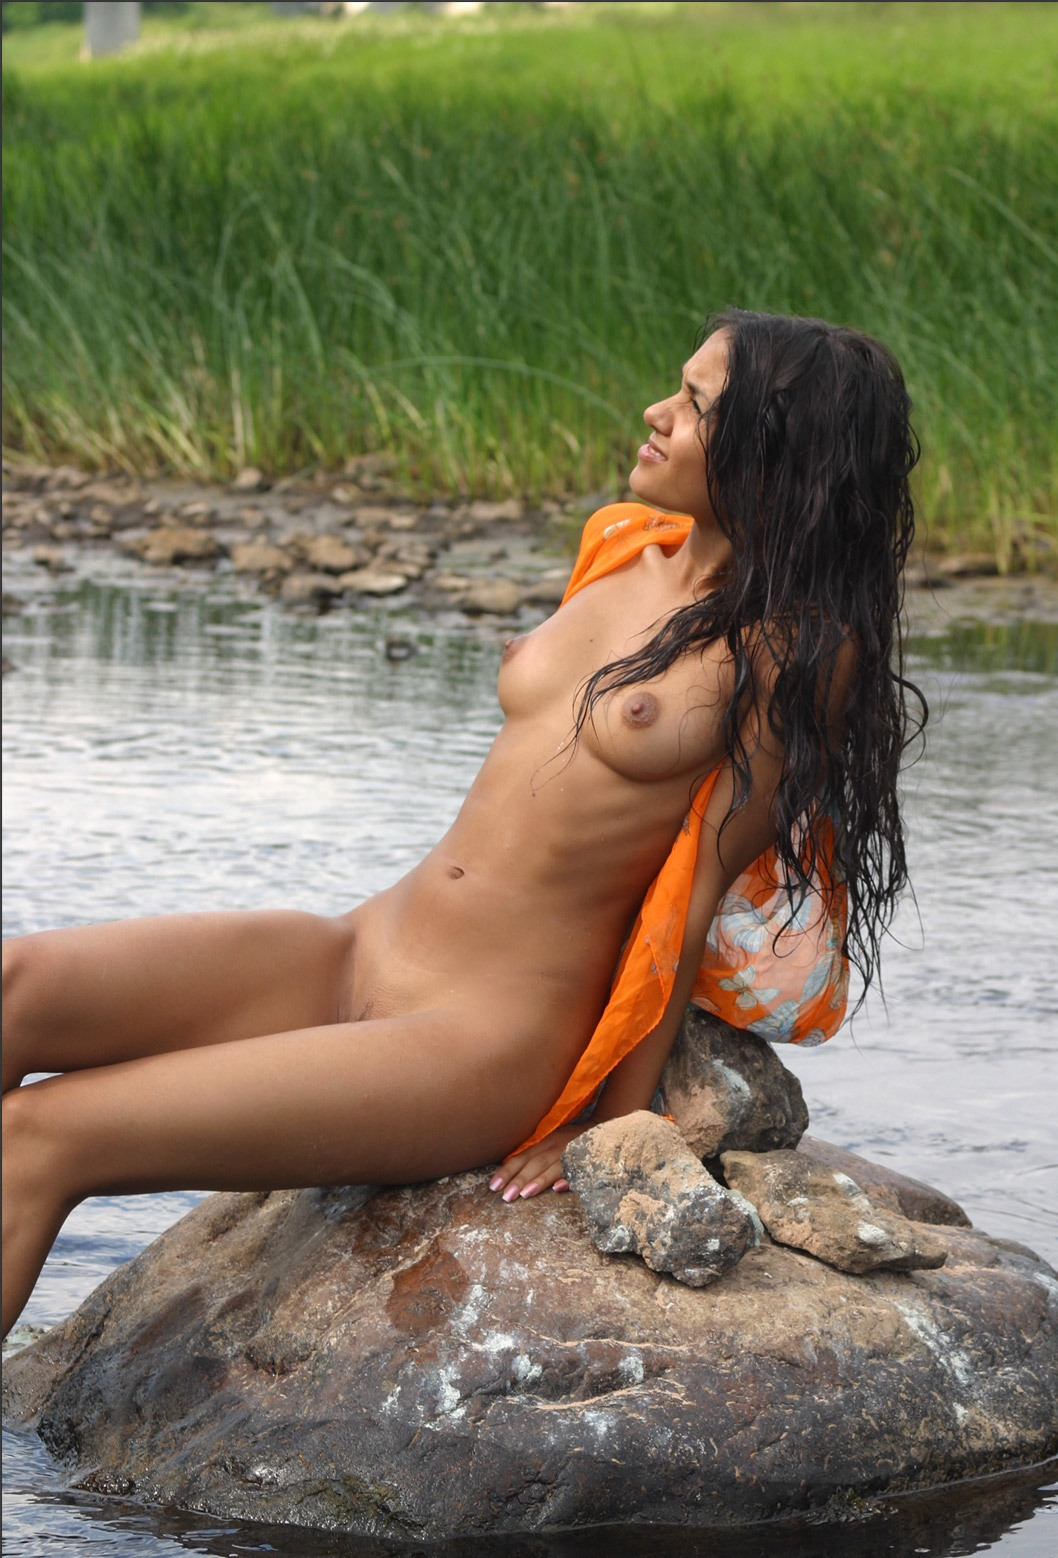 Big Girls 69 Indian Jungle Women Bathing Nude-1839